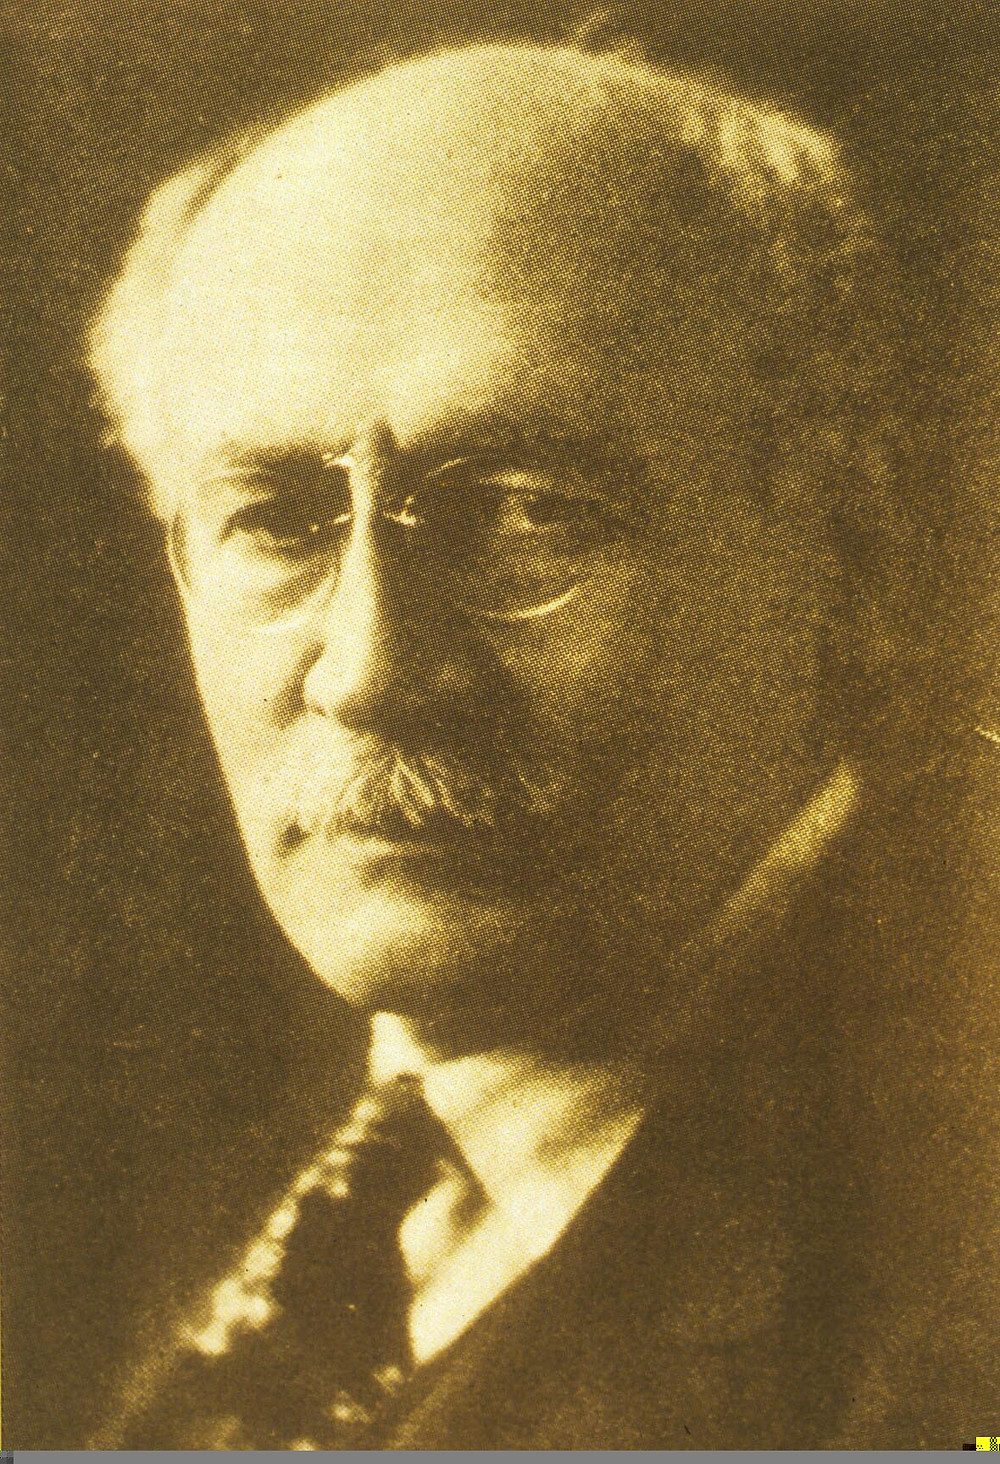 R Tait McKenzie, the first modern physician to specialize in exercise as medicine